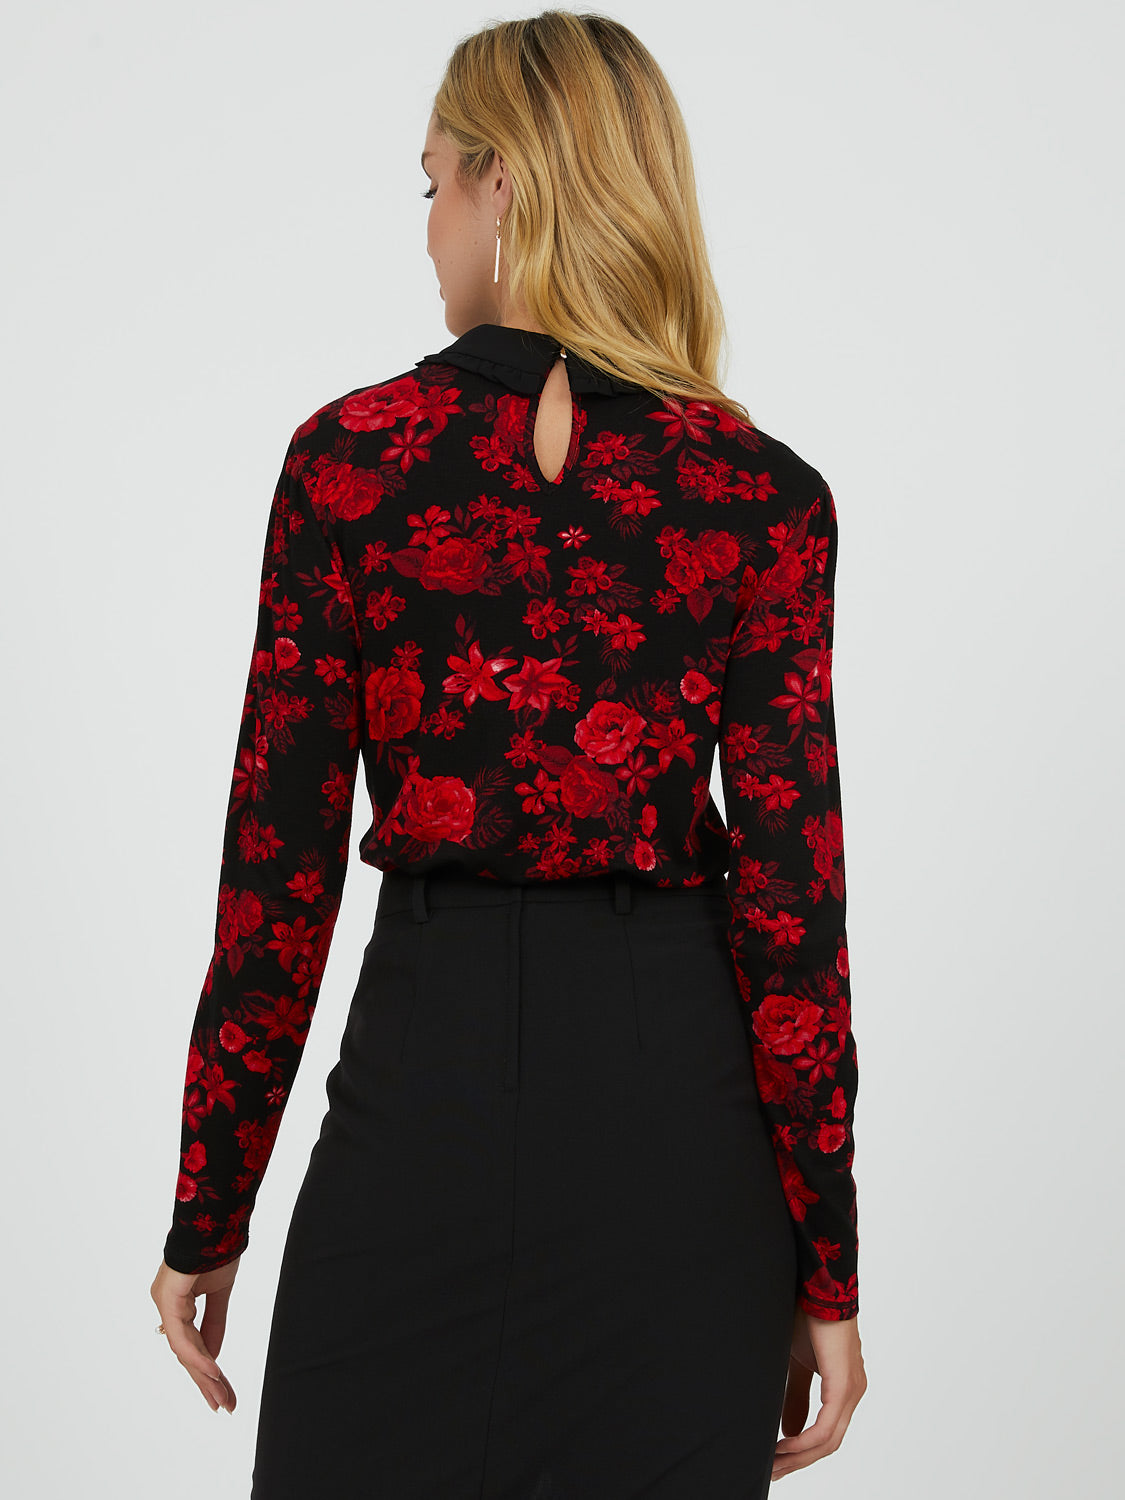 Chiffon Peter Pan Collar Floral Top